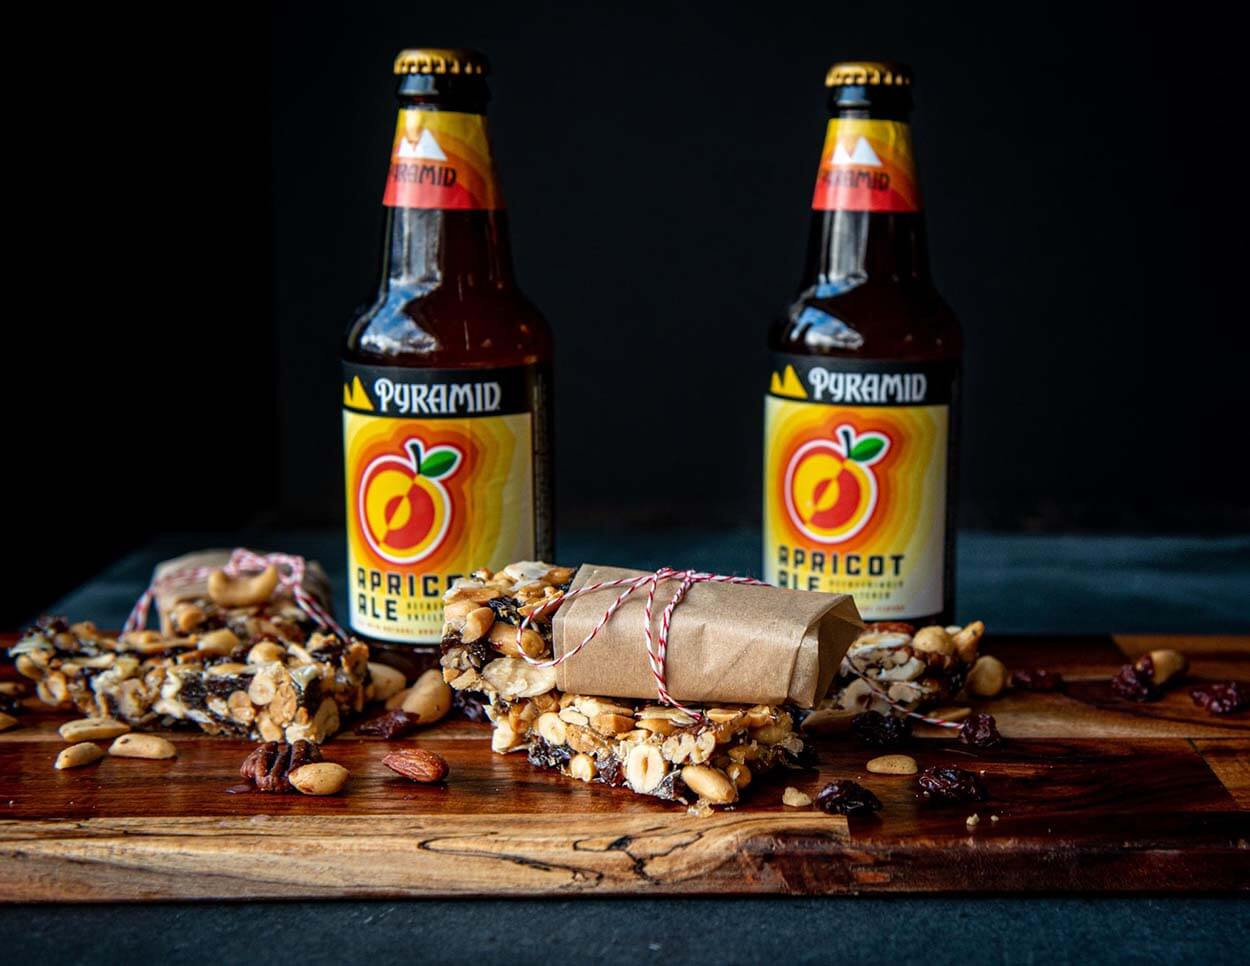 A wooden charcuterie board showing off an assortment of freshly made Apricot Ale Trail Bars along with 2 bottles of Pyramid's Apricot Ale